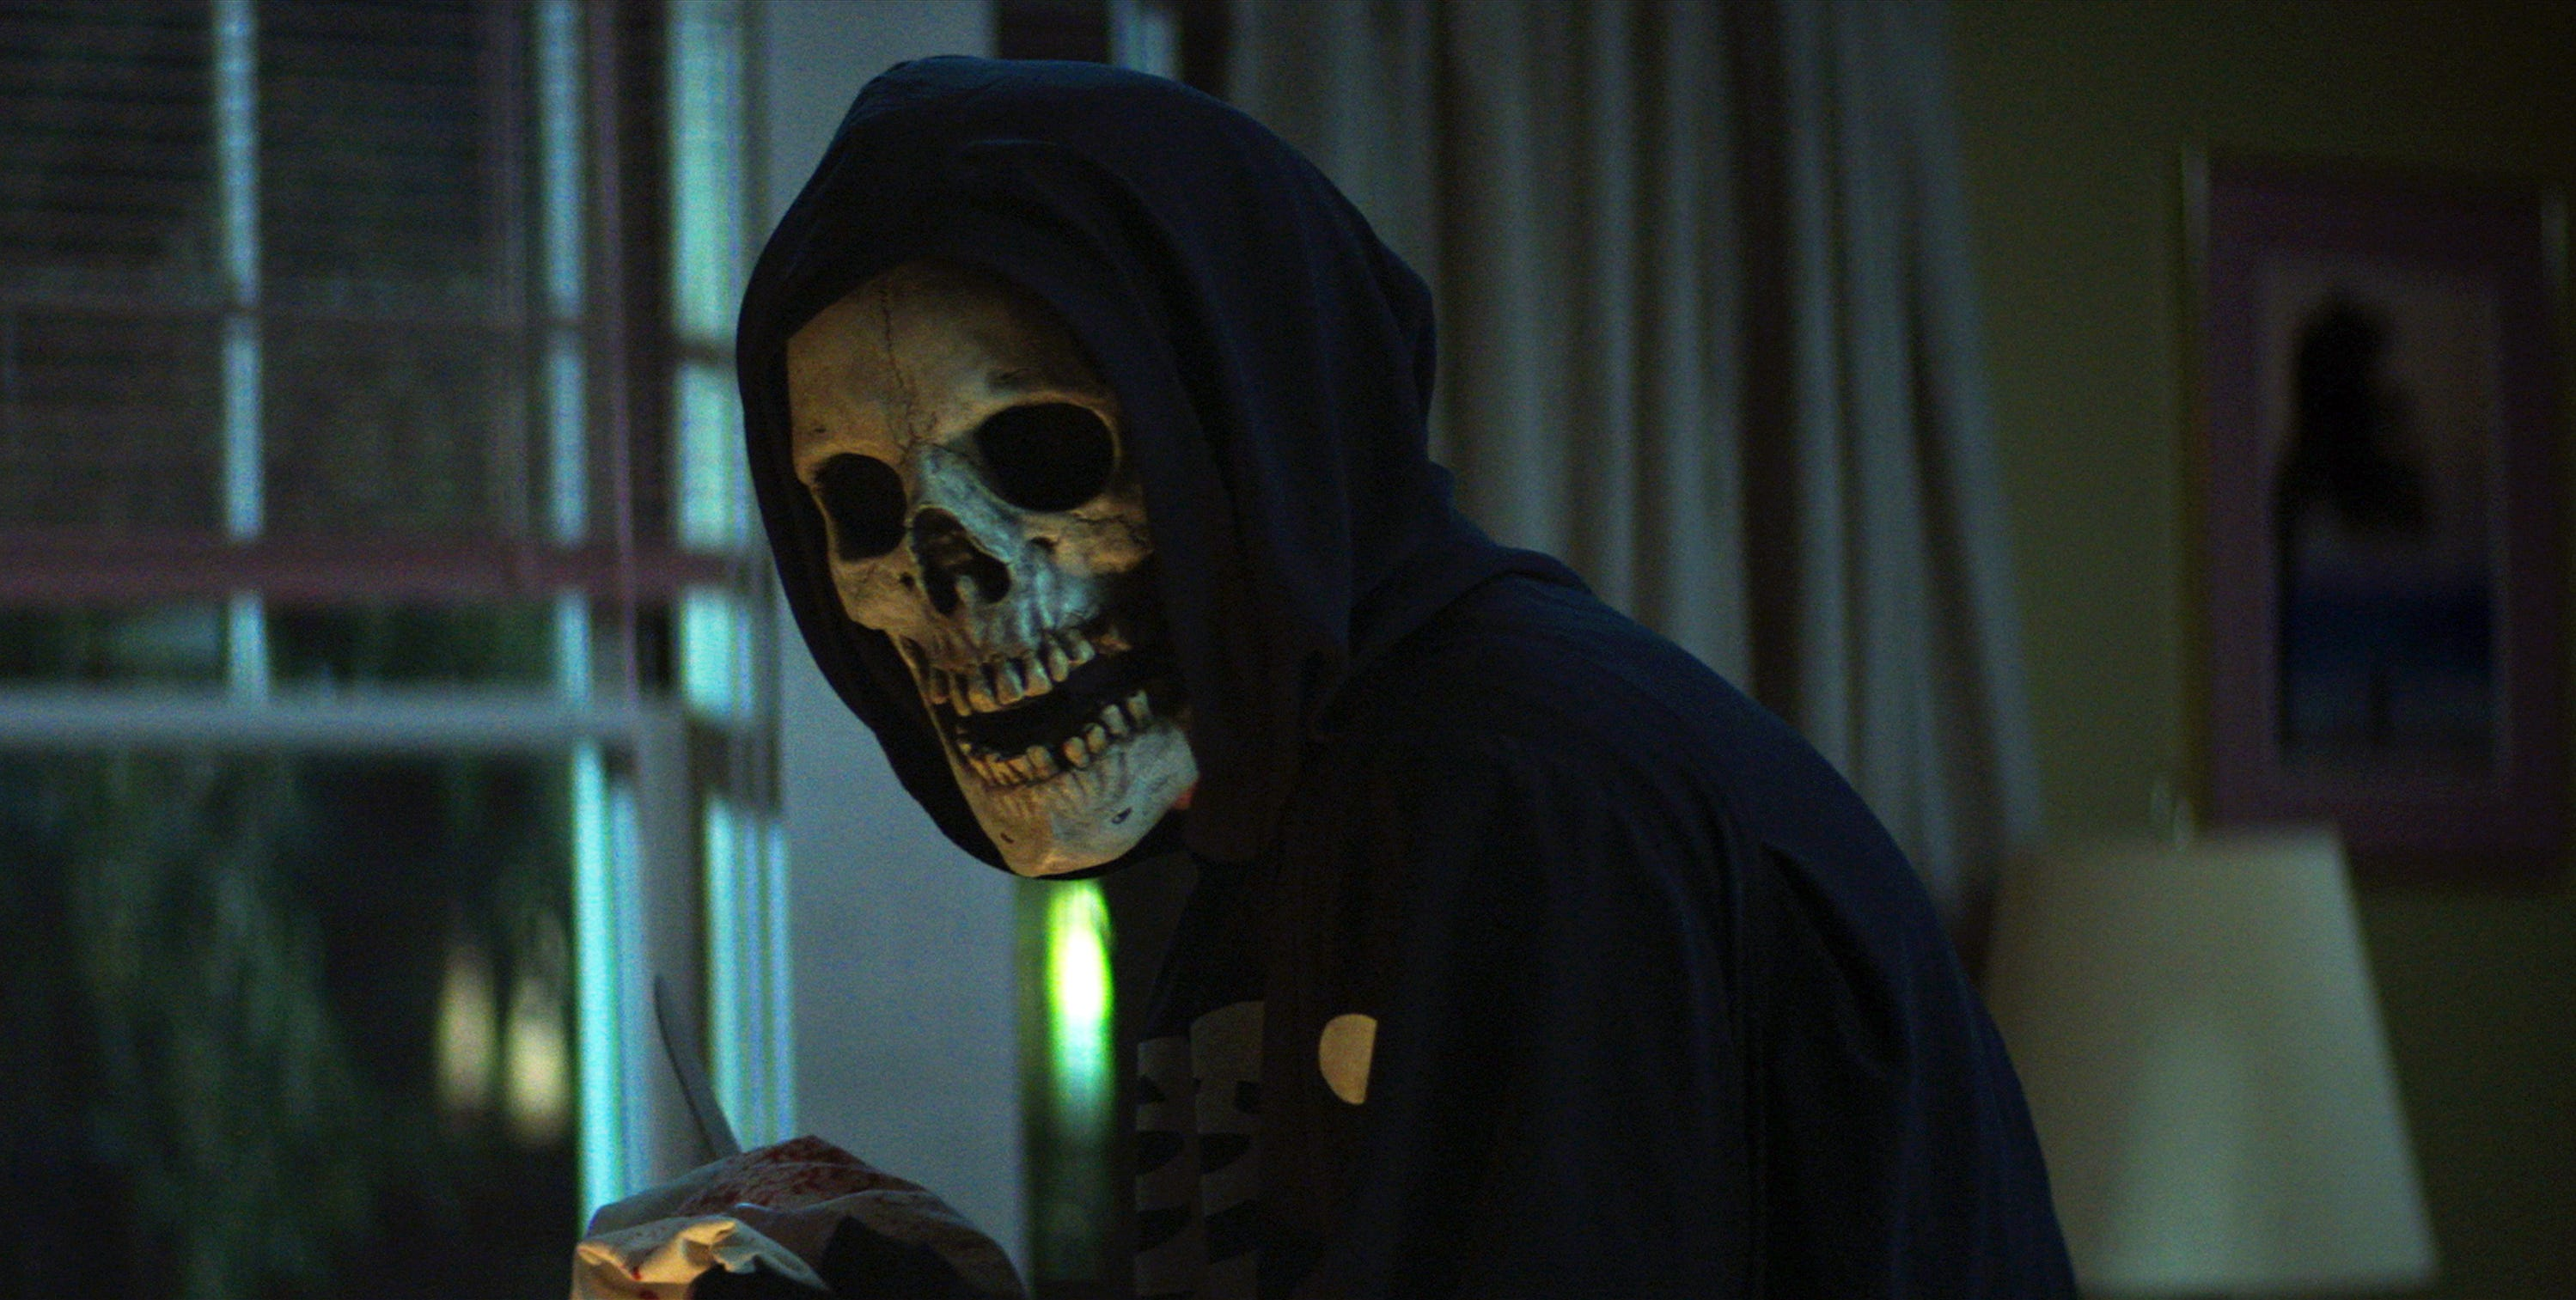 25 years after 'Scream,' Netflix's 'Fear Street' trilogy reinvents the teen slasher again